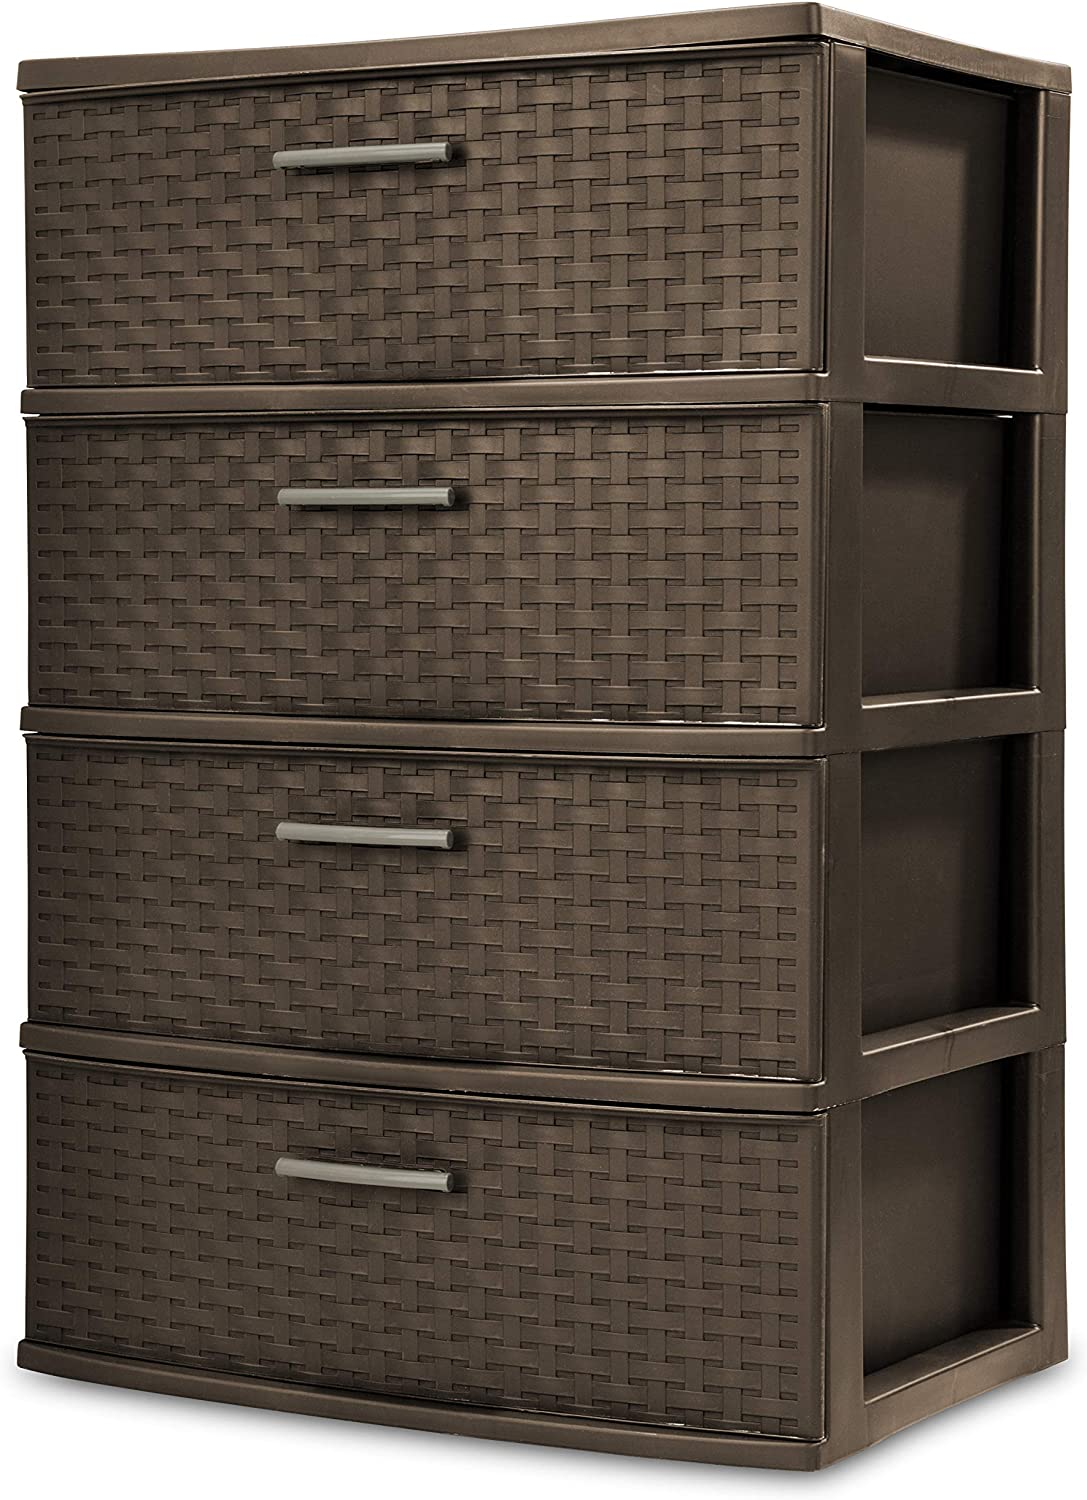 STERILITE 4-Drawer Wide Weave Tower, Espresso Frame & Drawers w/Driftwood Handles, 1-Pack